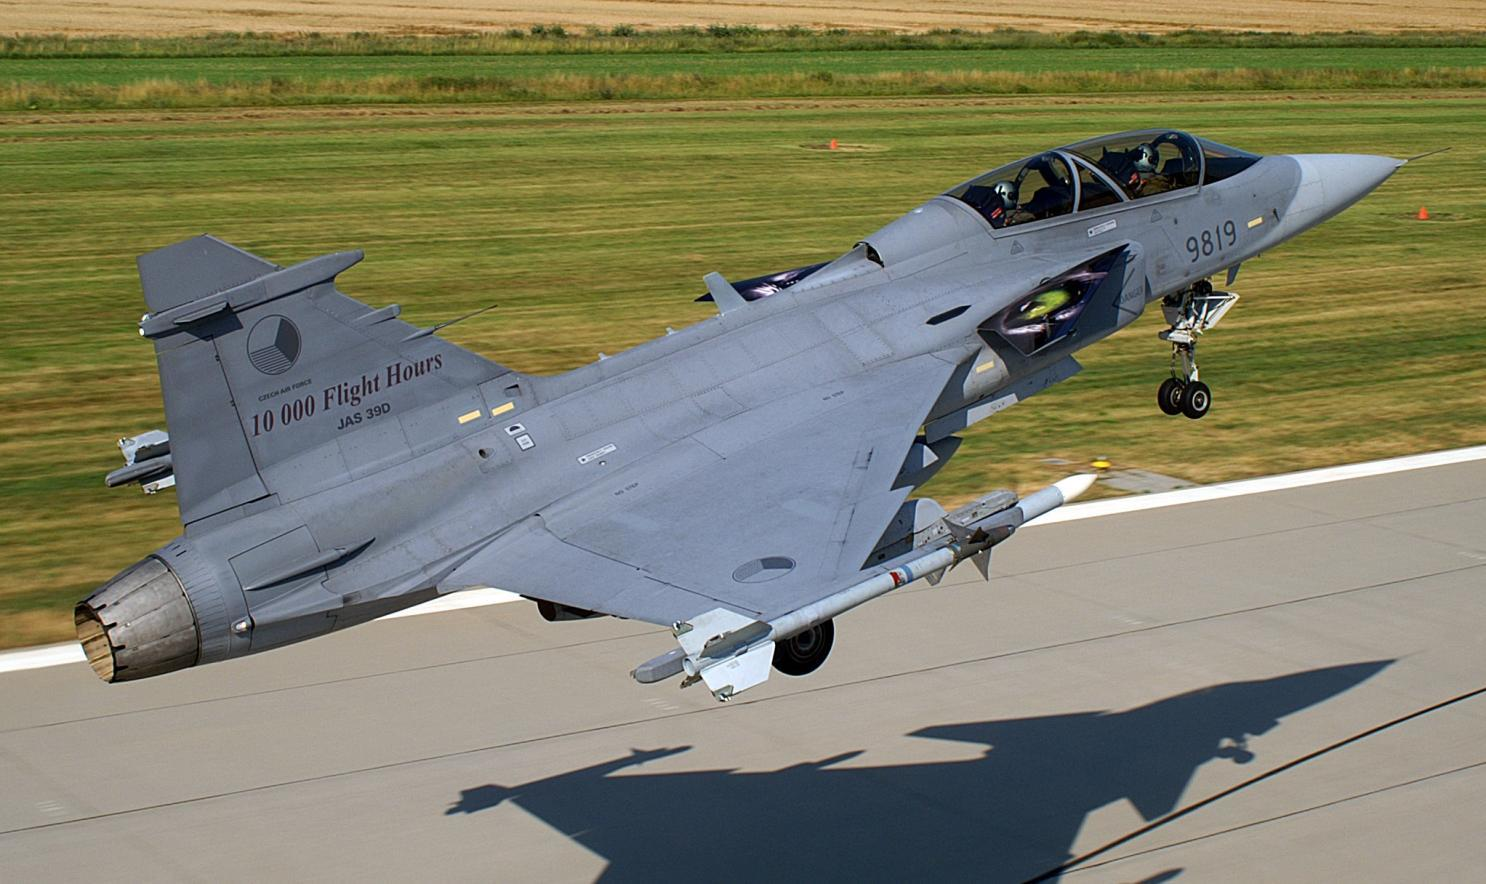 Eurofighter typhoon — википедия. что такое eurofighter typhoon